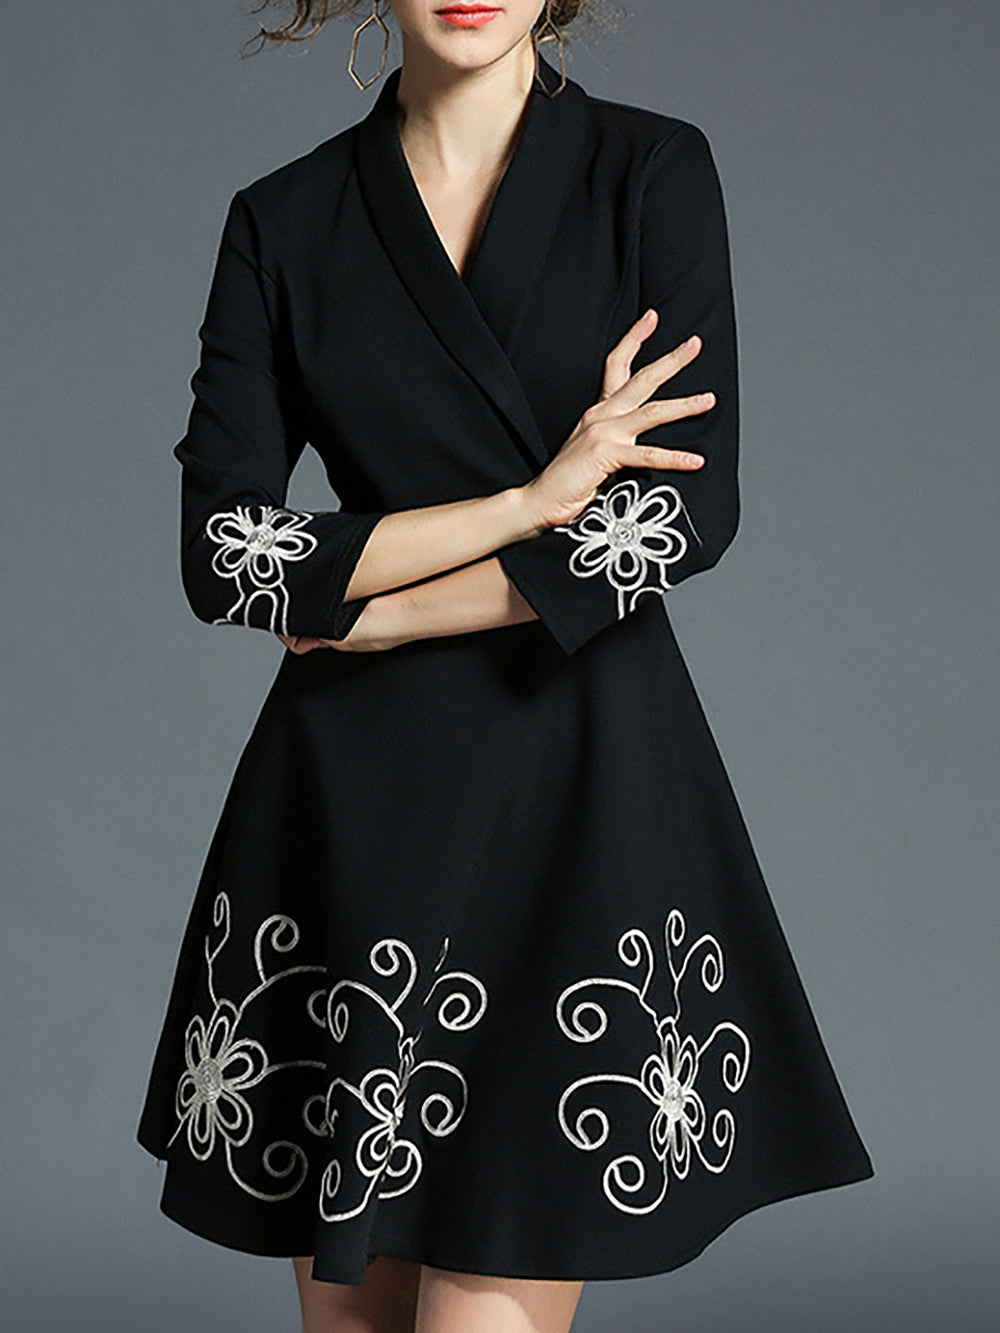 Black Elegant Cotton Floral Dress